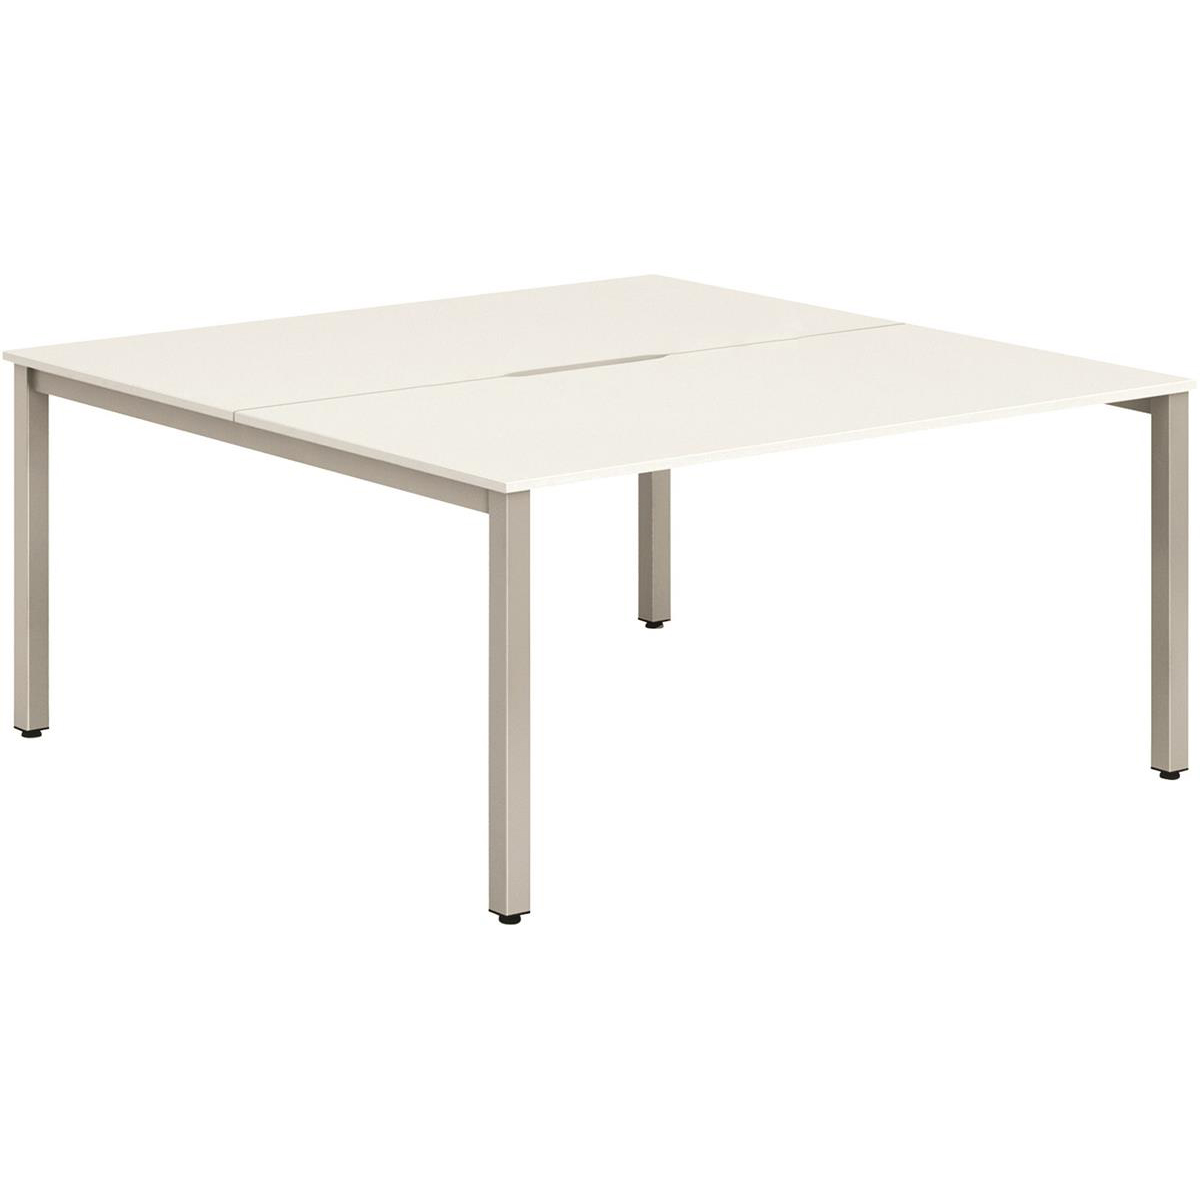 Trexus Bench Desk 2 Person Lockable Sliding Top 1400mm White with Silver Frame